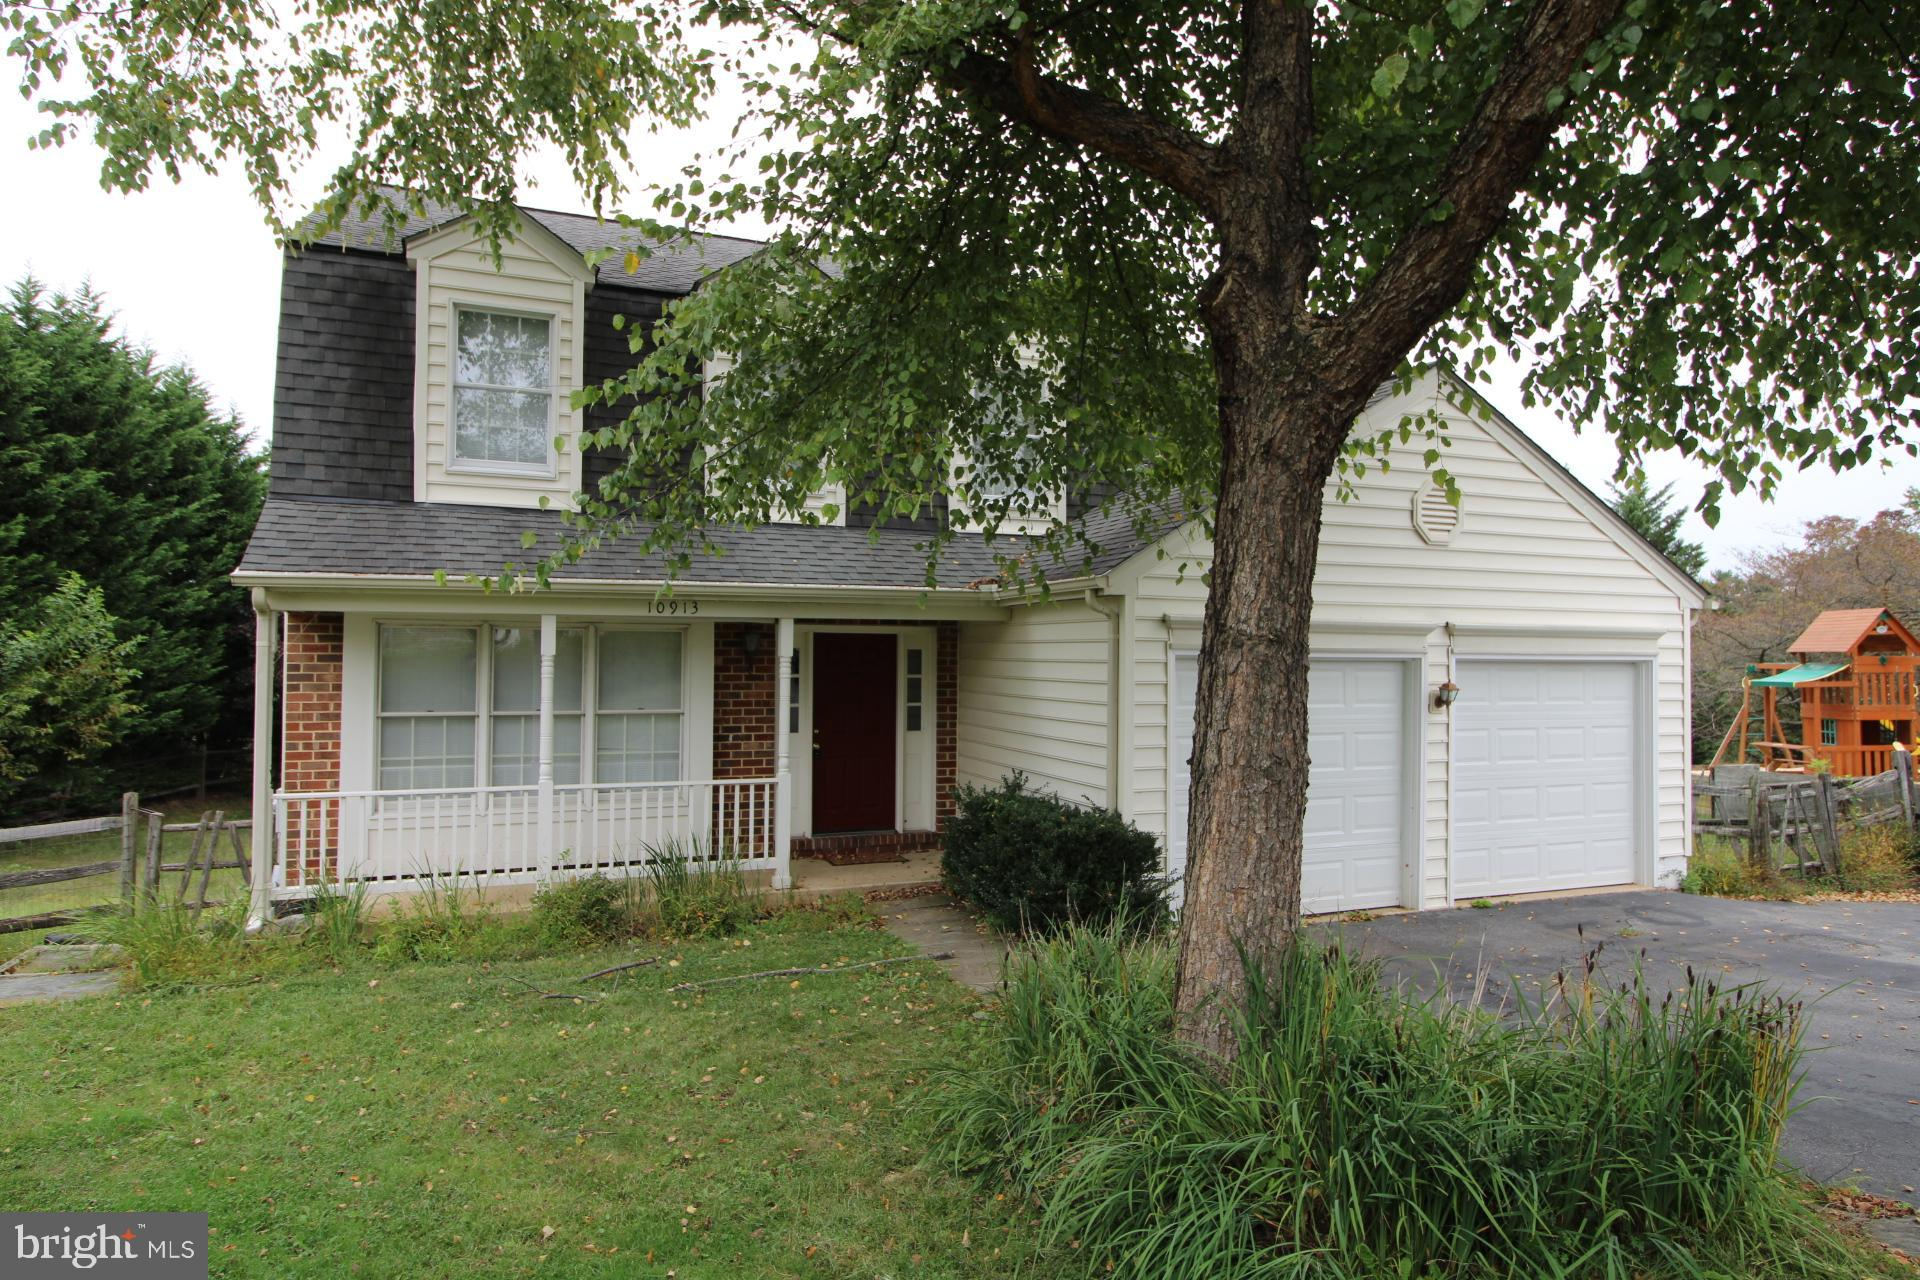 Nicely updated 4 Bedroom, 3.5 Bath on a quiet cul de sac in the popular Sweepstakes neighborhood! Up